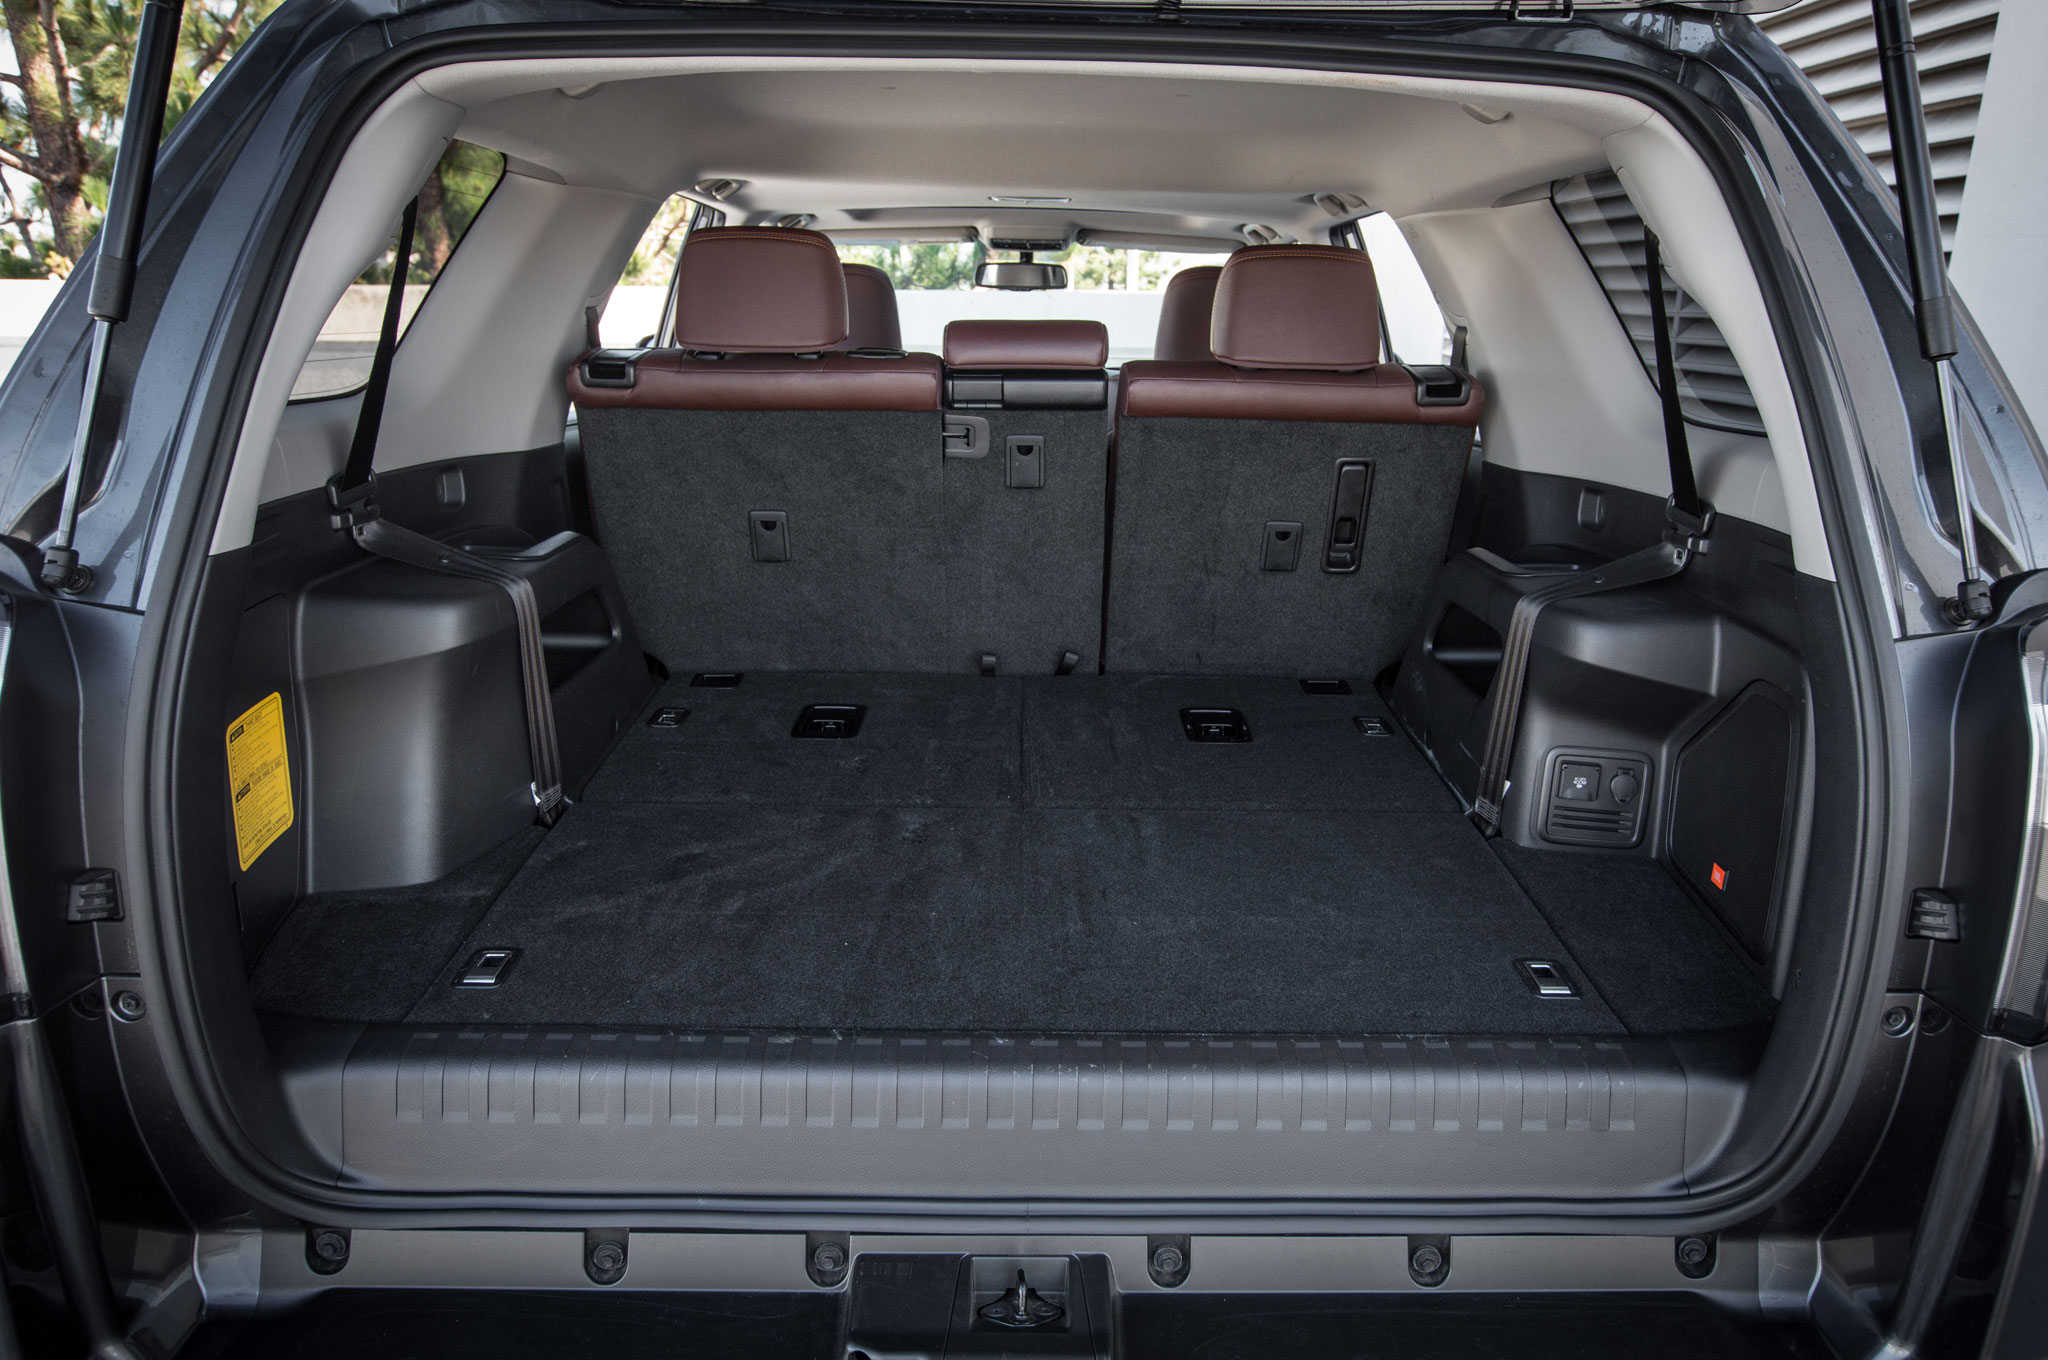 2015 Toyota 4runner Limited Cargo Space 02 Motor Trend